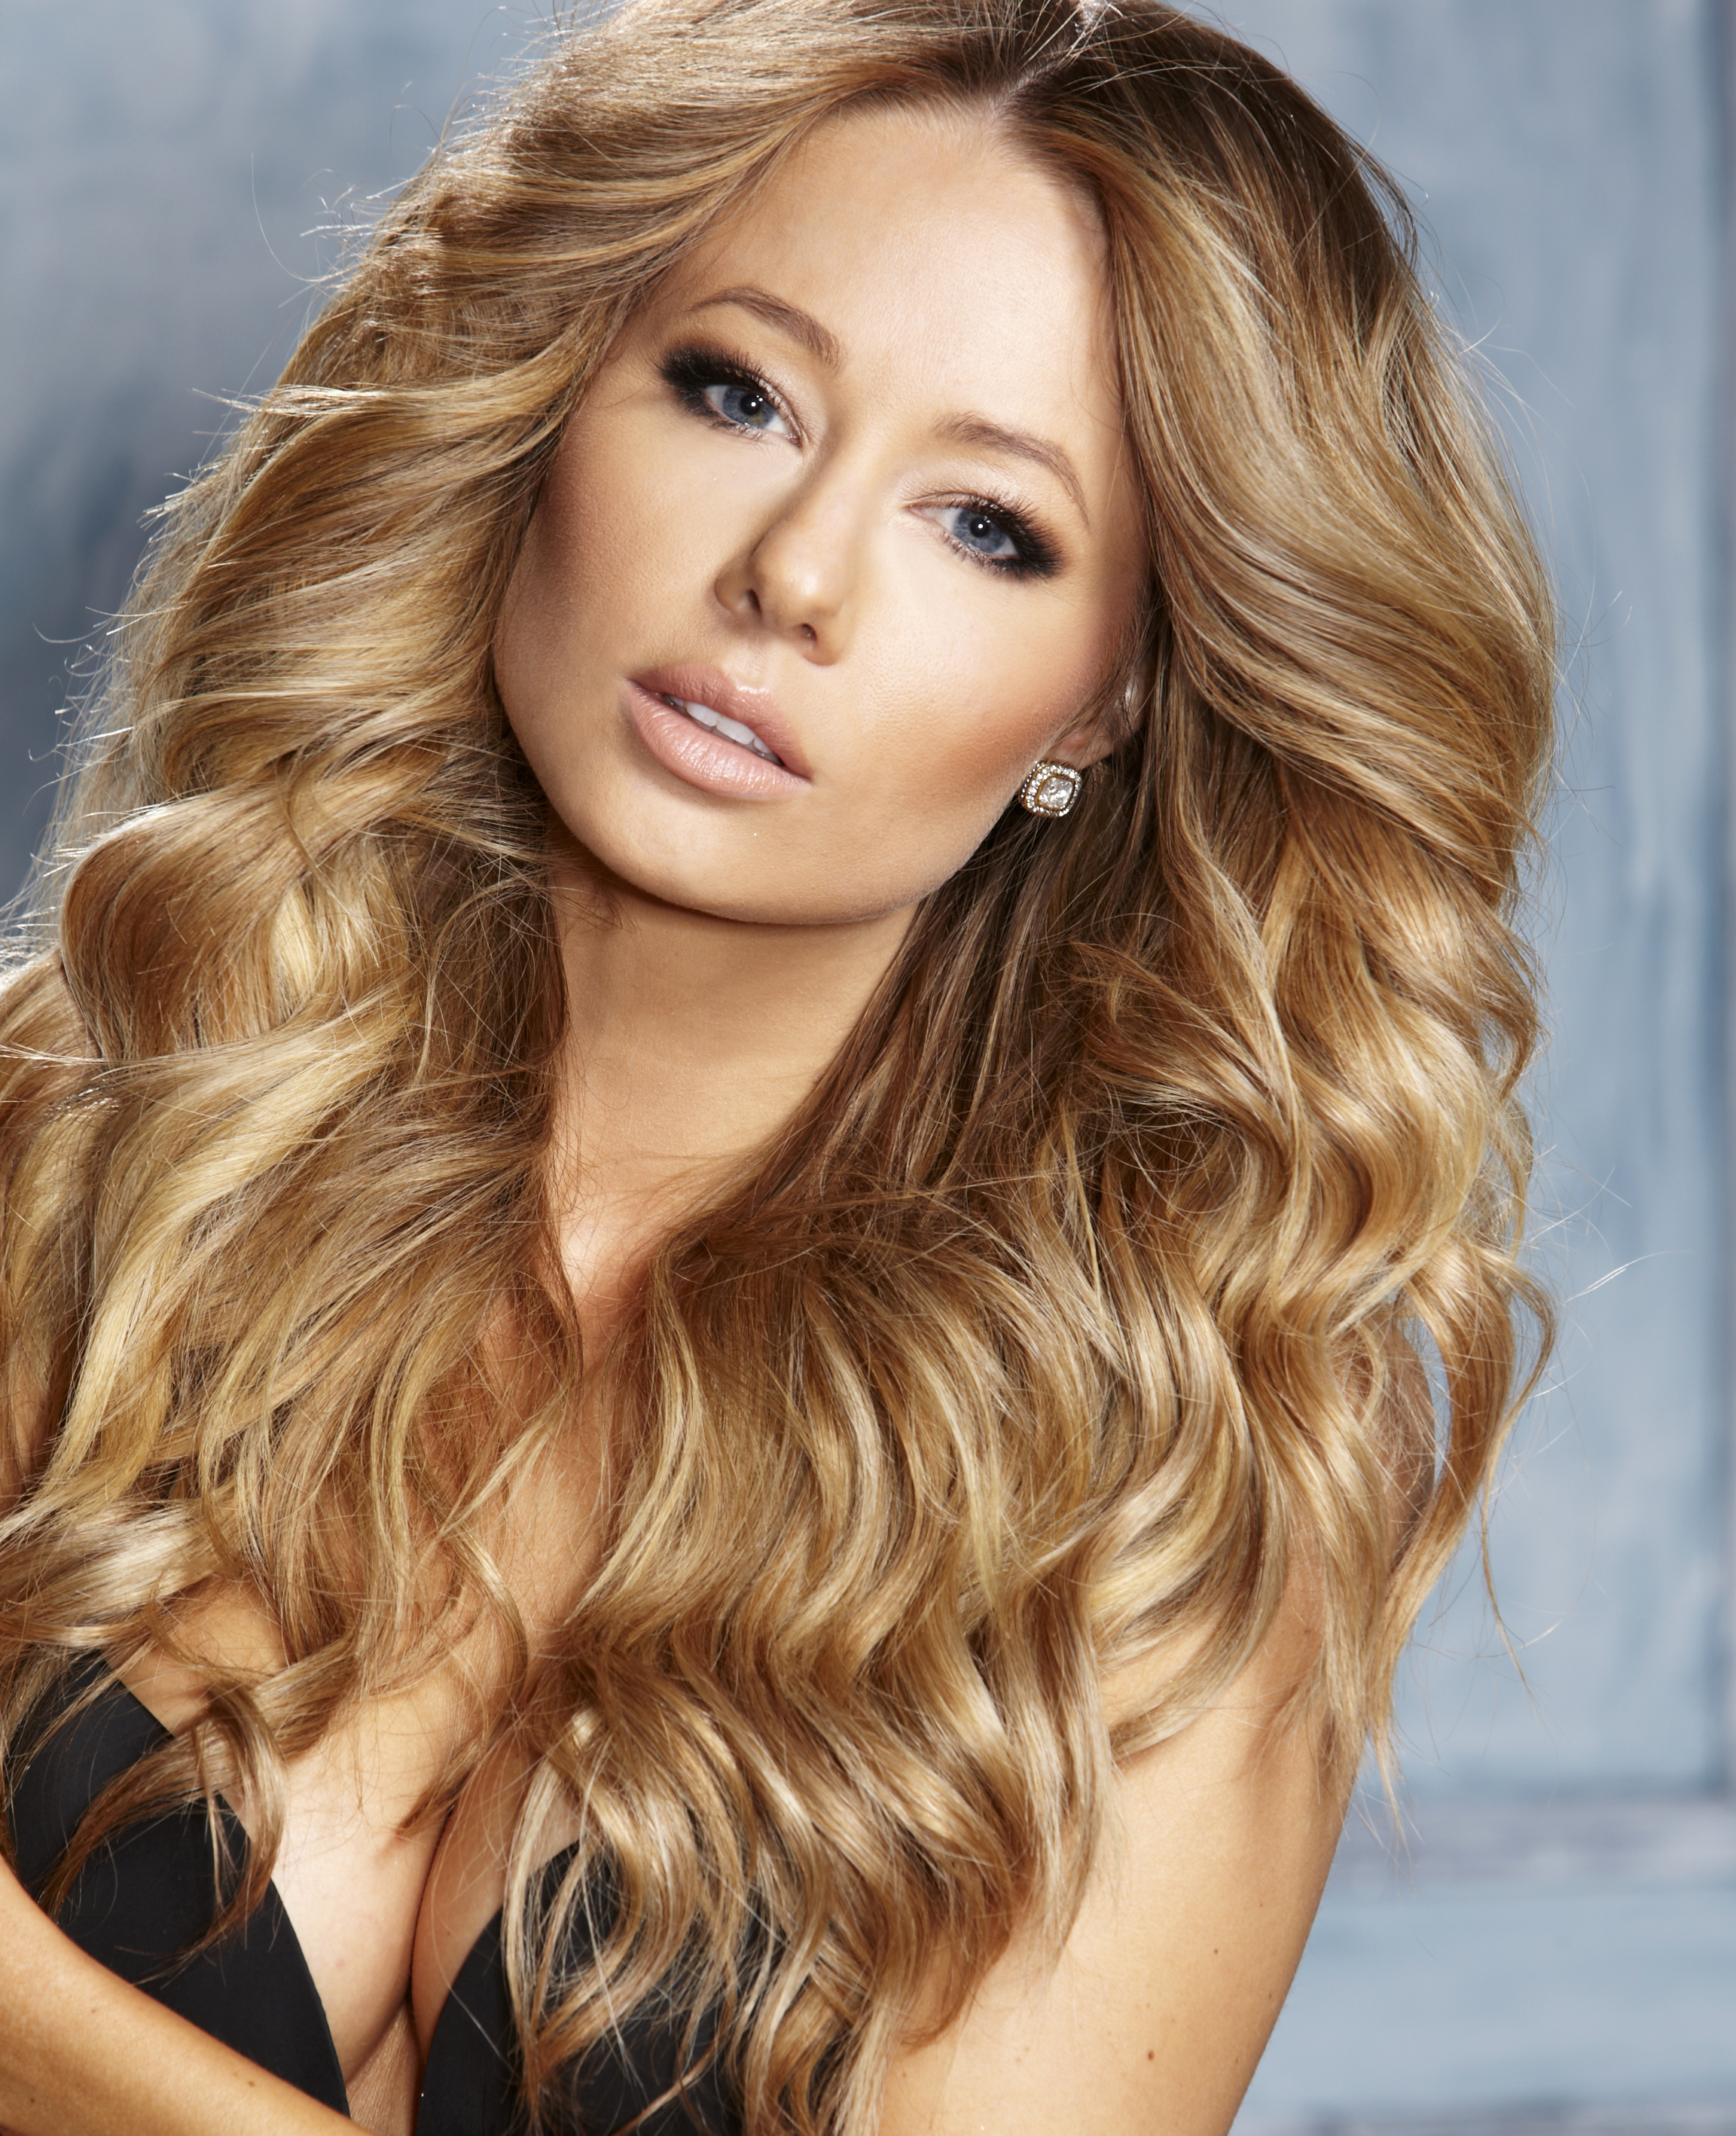 Fabulous Rich Girl Hair Viva Glam Magazine